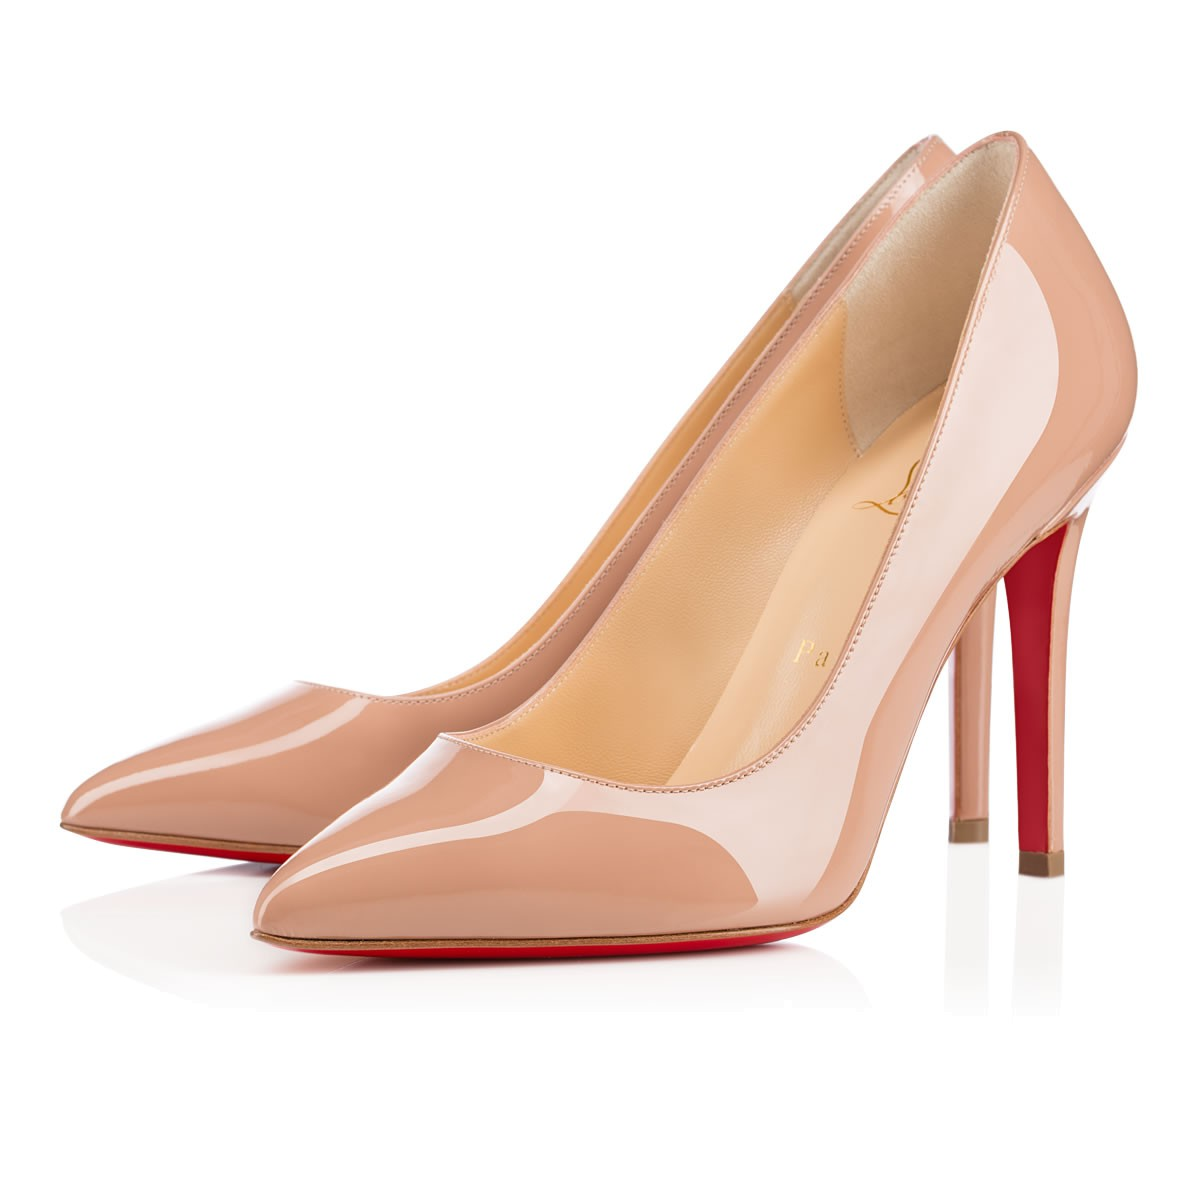 christianlouboutin-pigalle-3080680_PK20_1_1200x1200_2.jpg